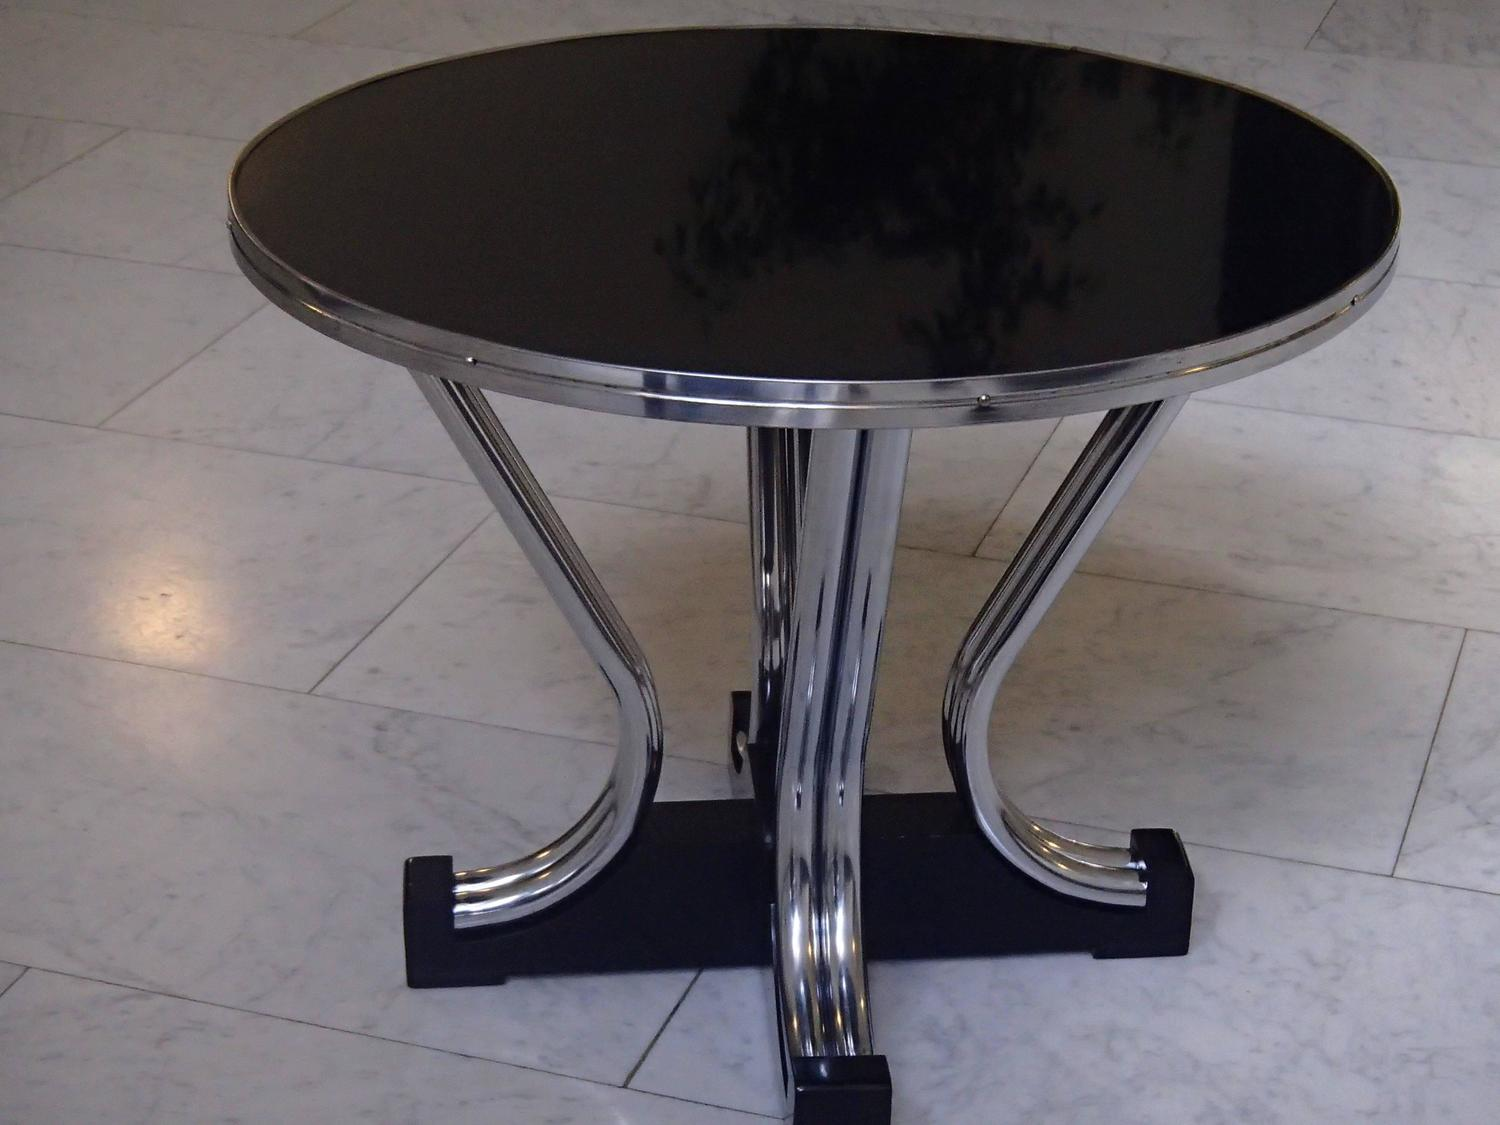 Bauhaus Round Coffee Table Chrome And Black For Sale At 1stdibs